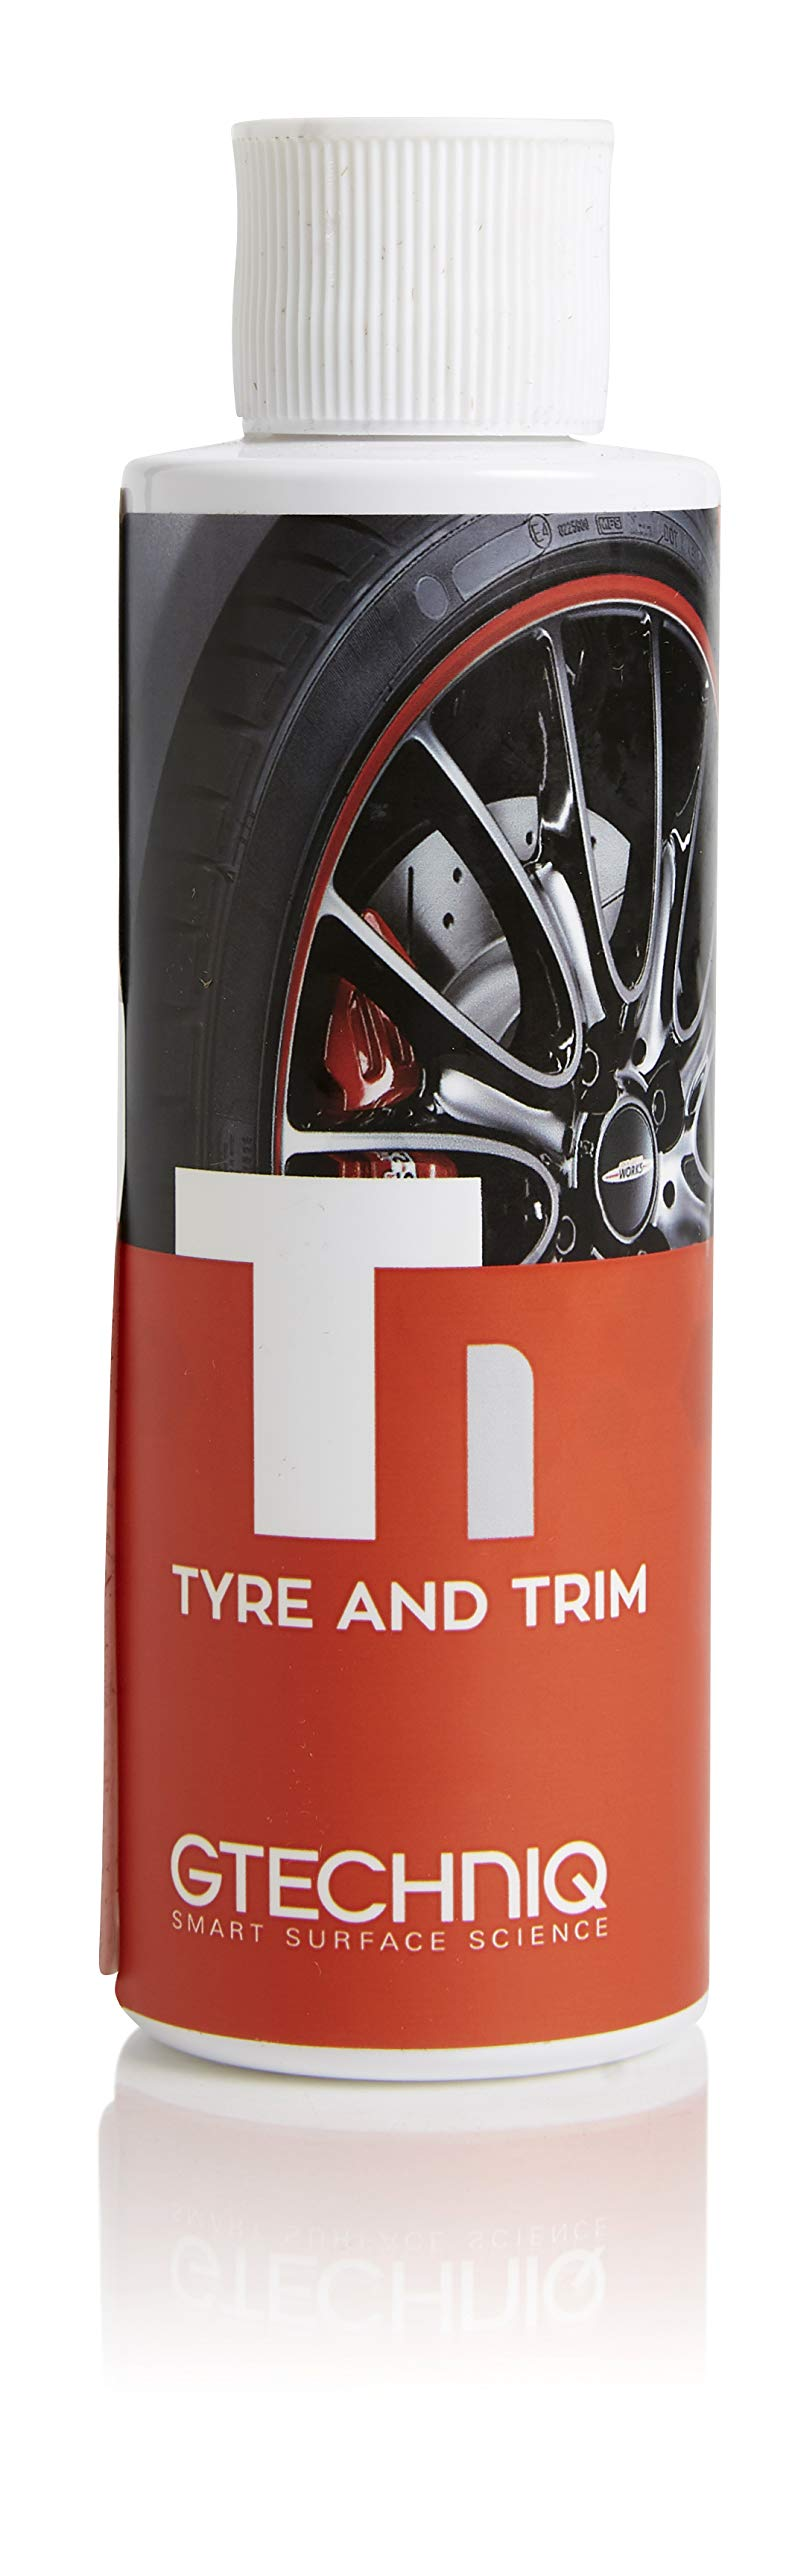 Gtechniq T1 Tire and Trim 250ml by Gtechniq (Image #1)